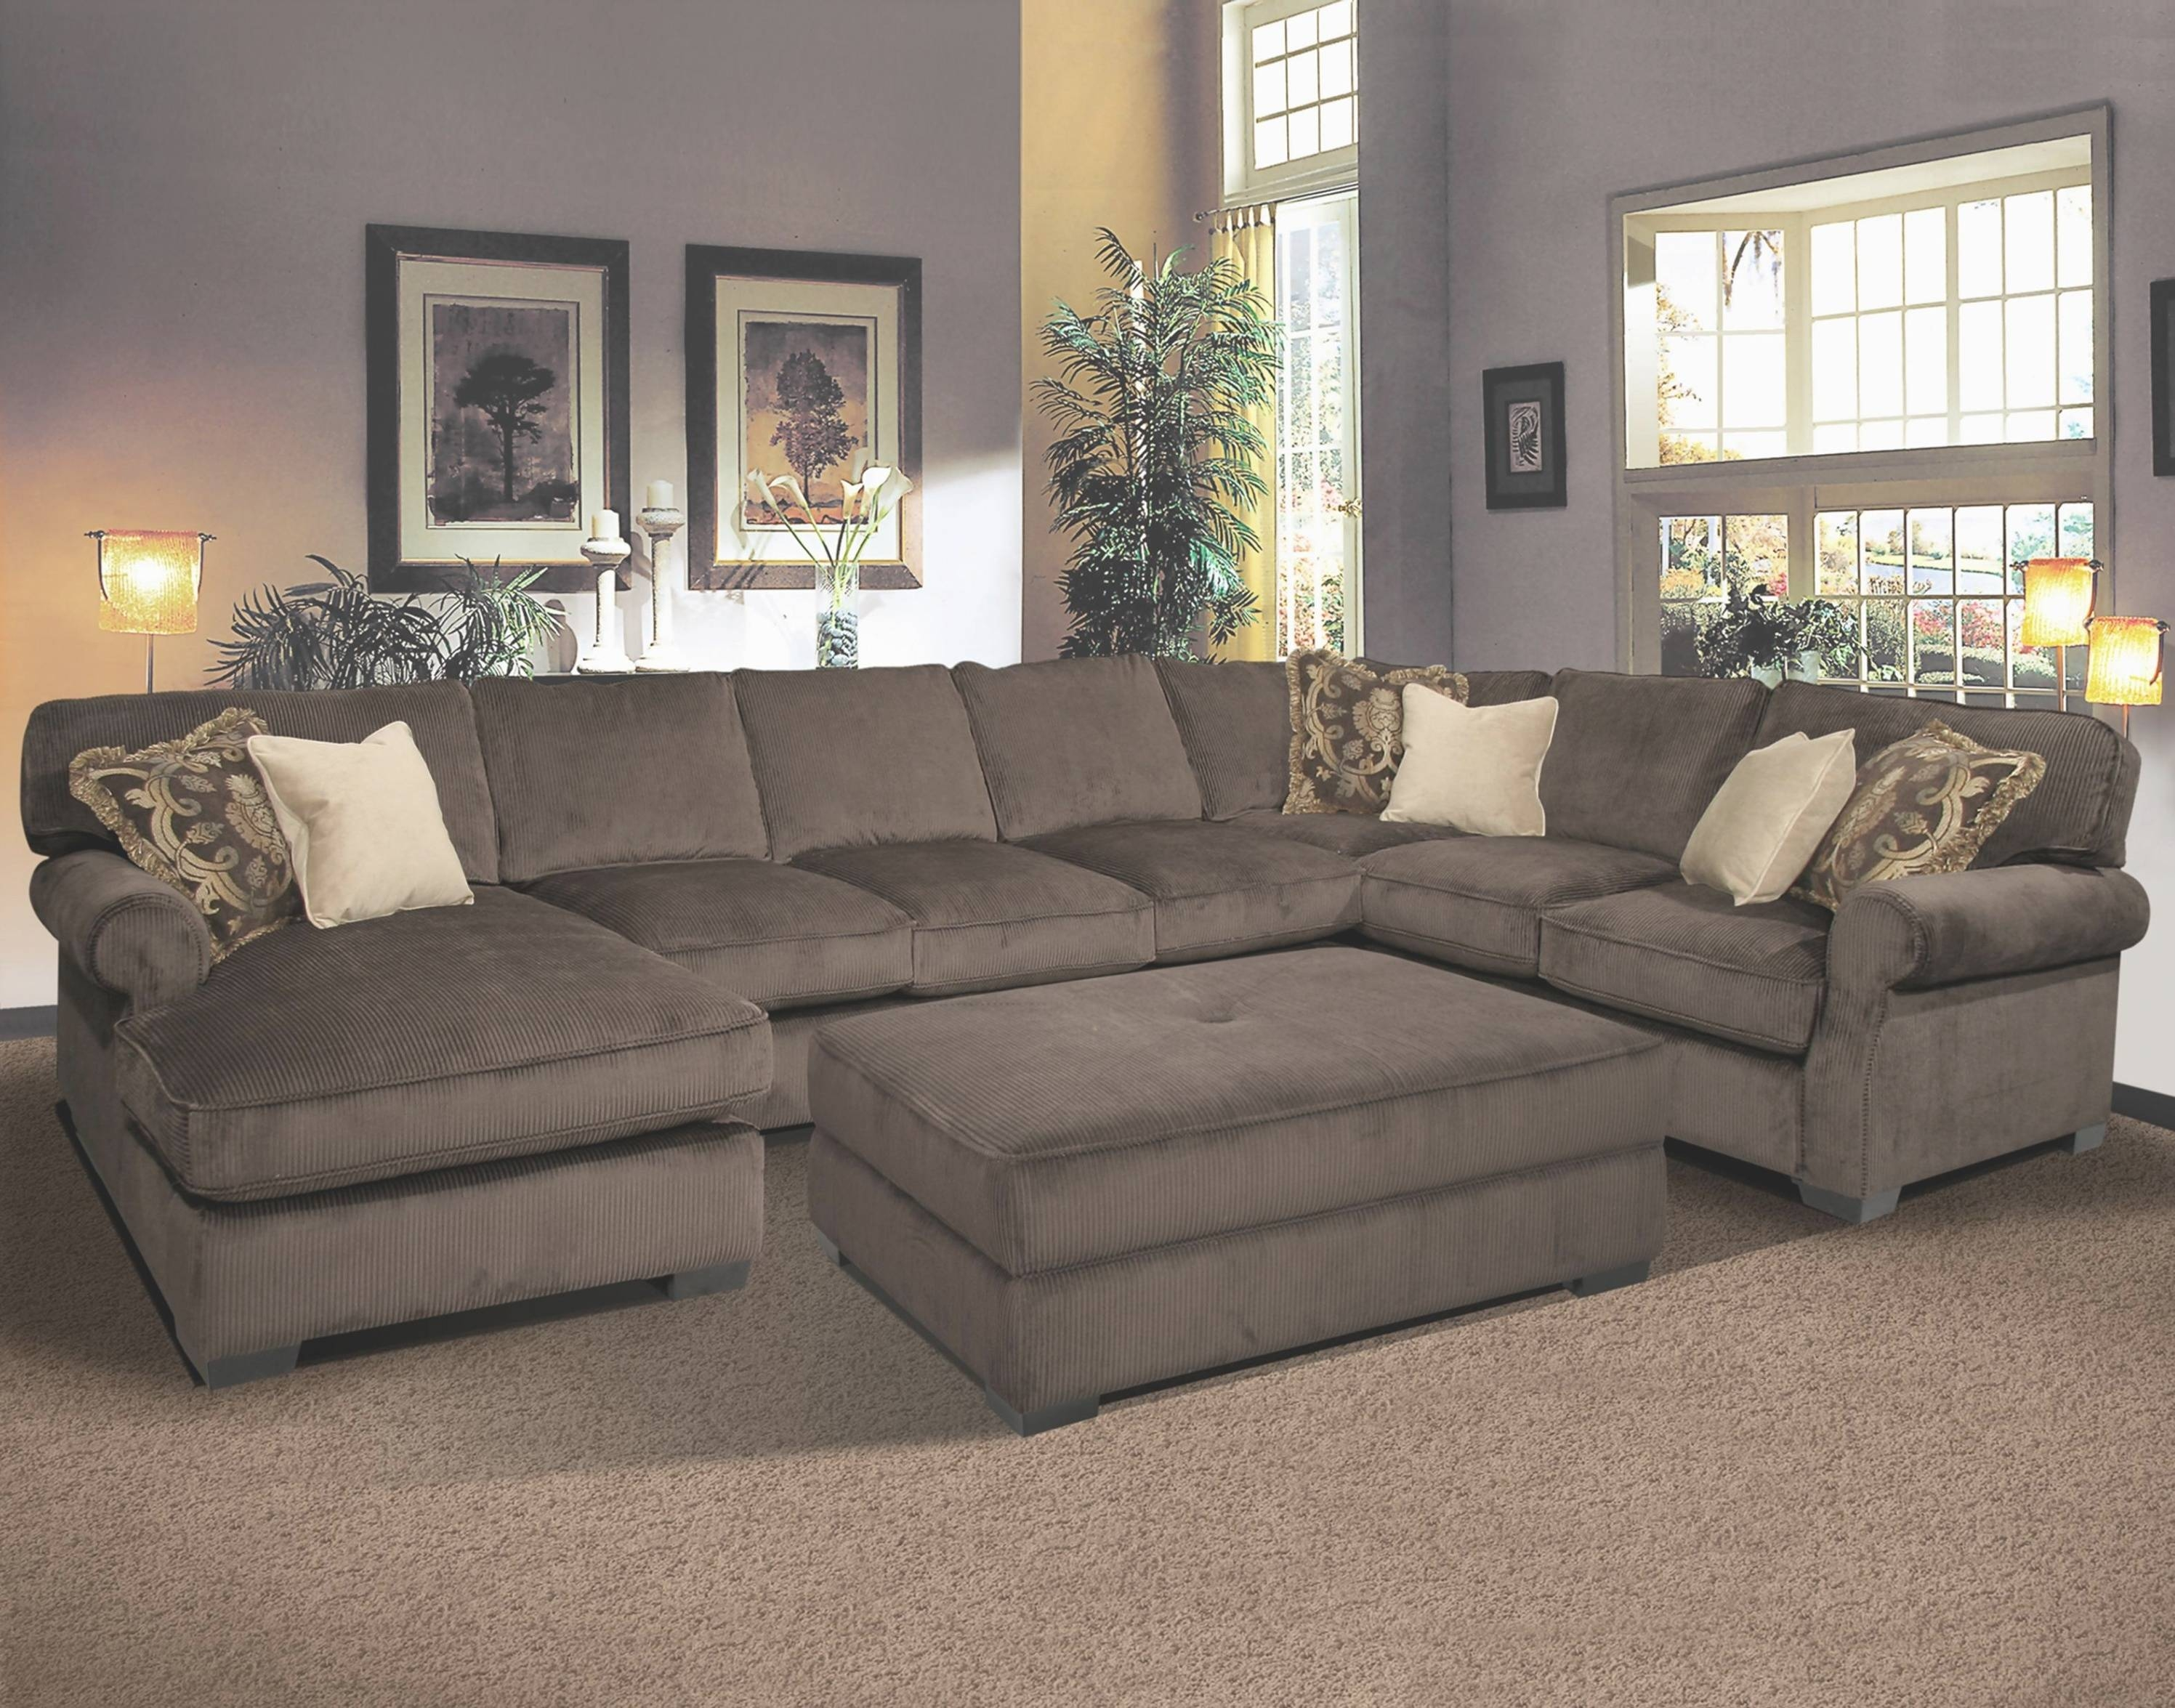 Sofas Center : Appealing Sectional Pit Sofa In Extra Wide Sofas inside Wide Sectional Sofa (Image 21 of 25)